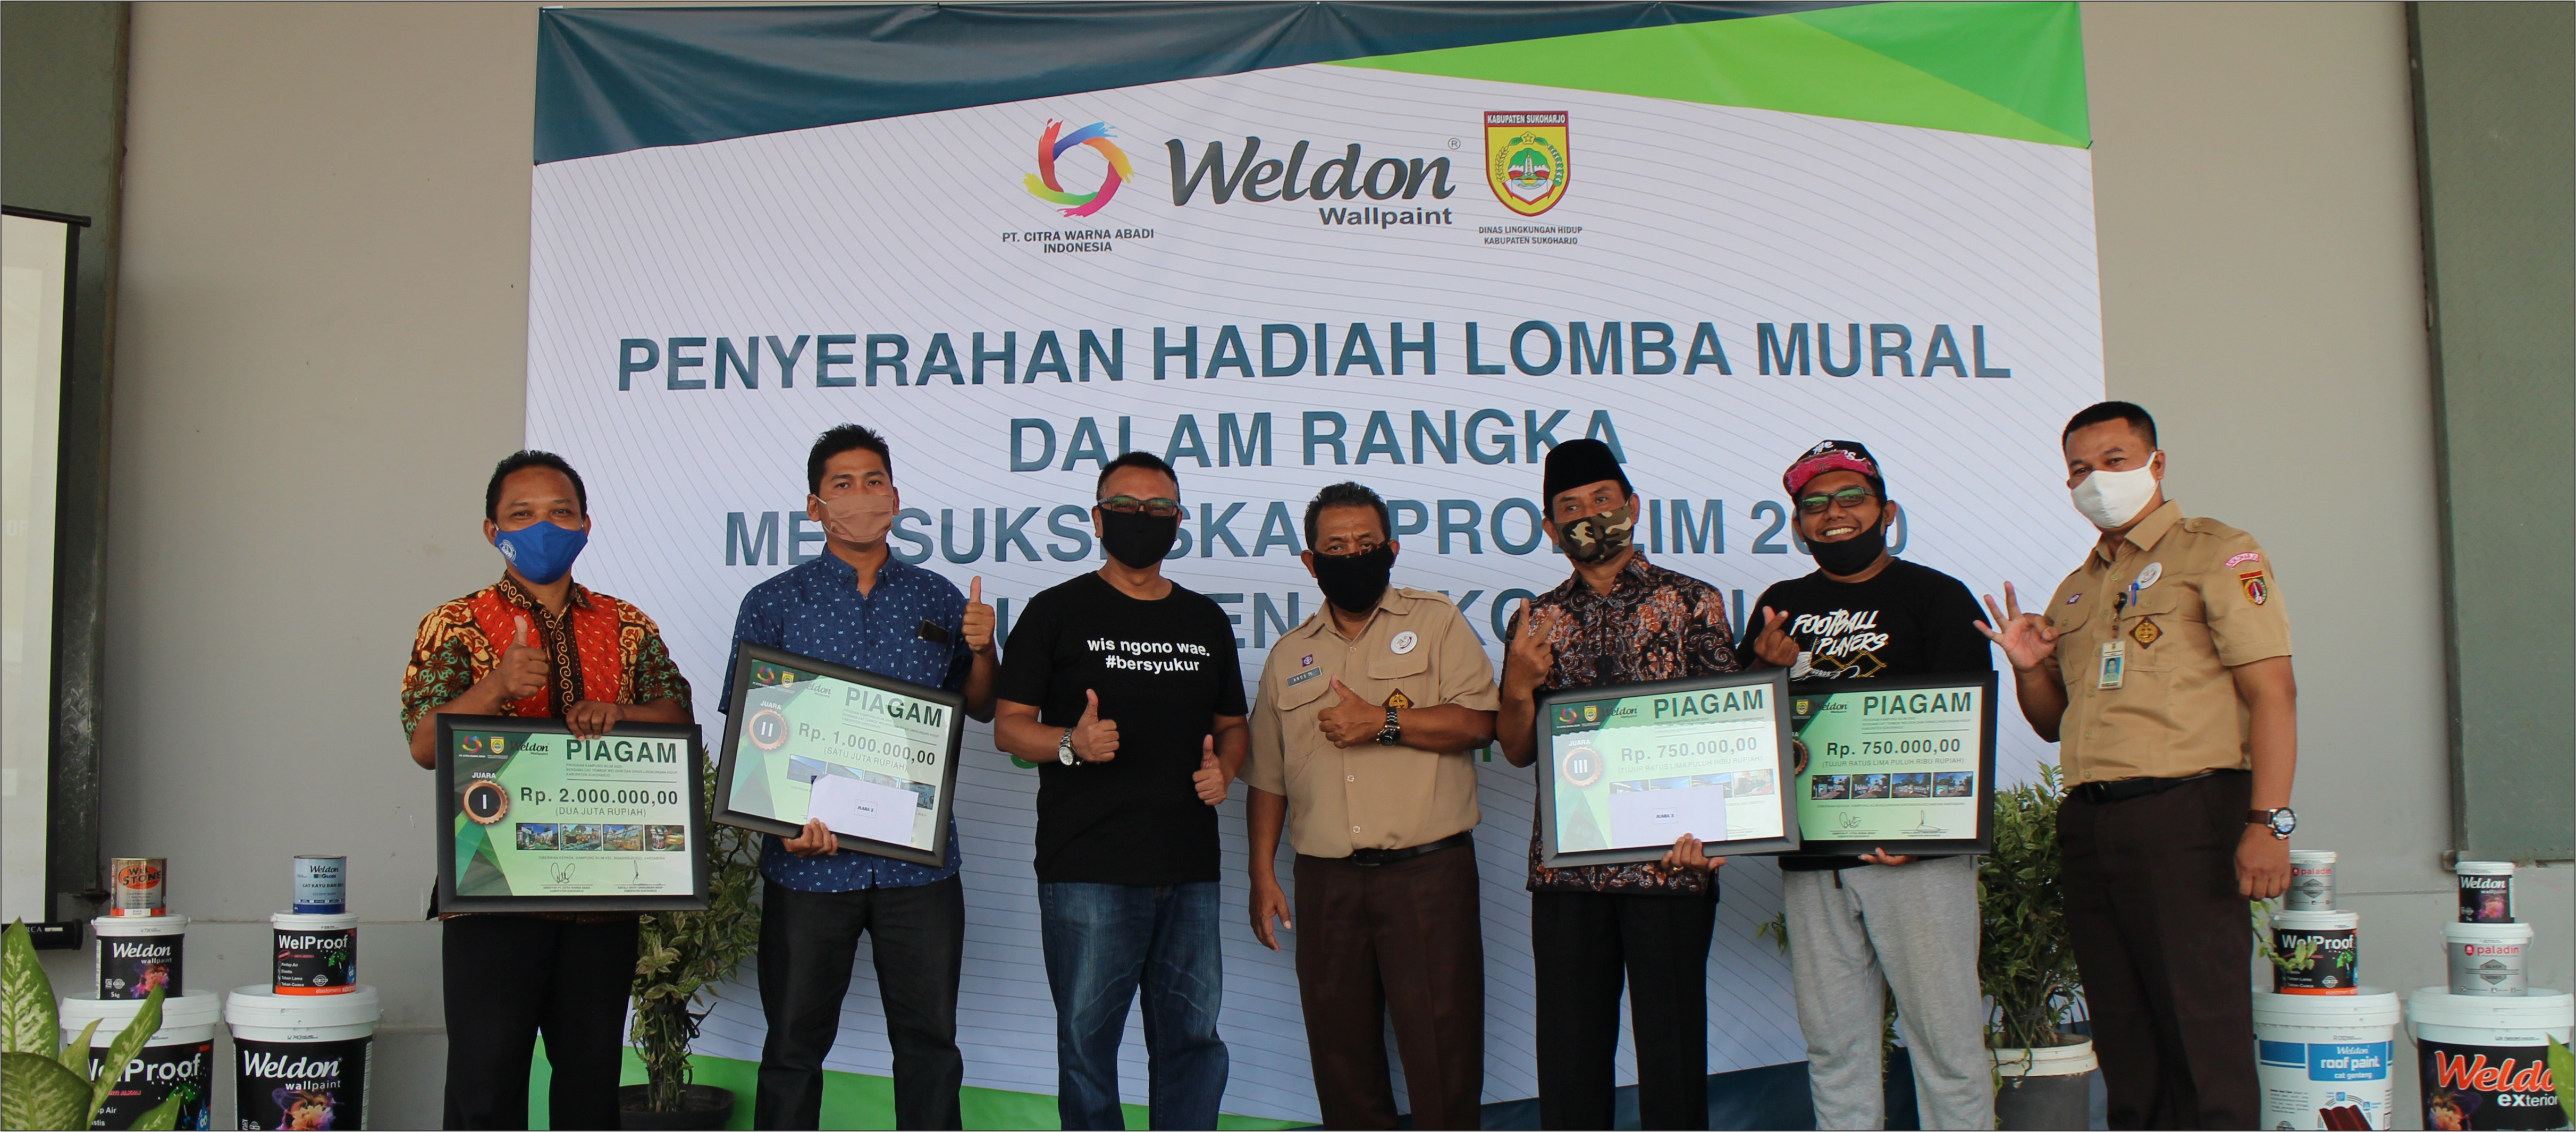 "<h2><strong><span style=""color:#ffffff;""><span style=""background-color:#27ae60;"">Penyerahan Hadiah Lomba PROKLIM 2020 Kabupaten Sukoharjo</span></span></strong></h2>"